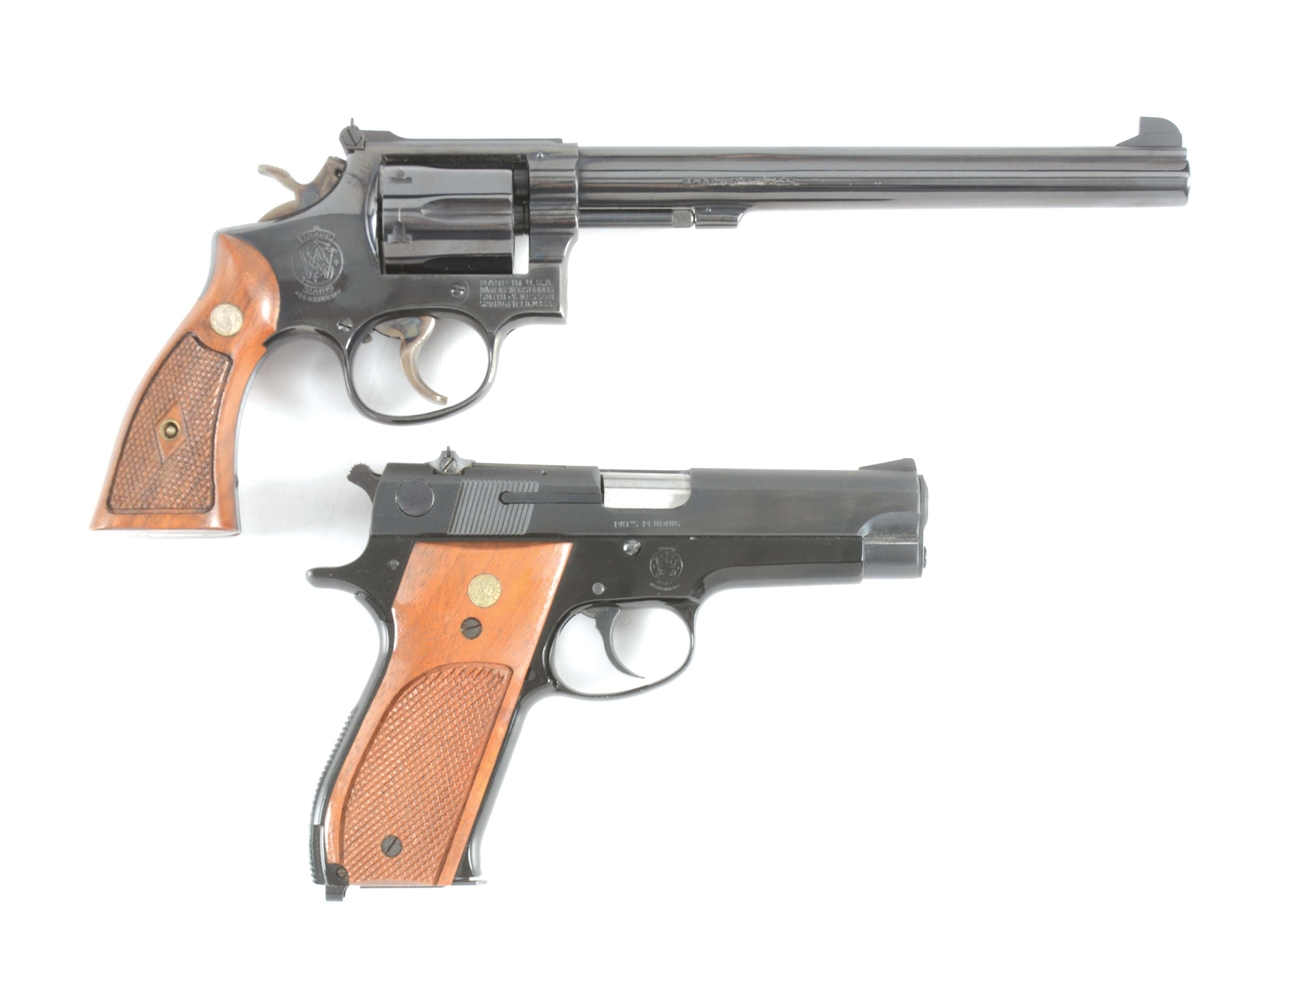 (M) LOT OF TWO SMITH AND WESSON PISTOLS: MODEL 14 .38 REVOLVER AND MODEL 39-2 9MM SEMI AUTOMATIC PISTOL.